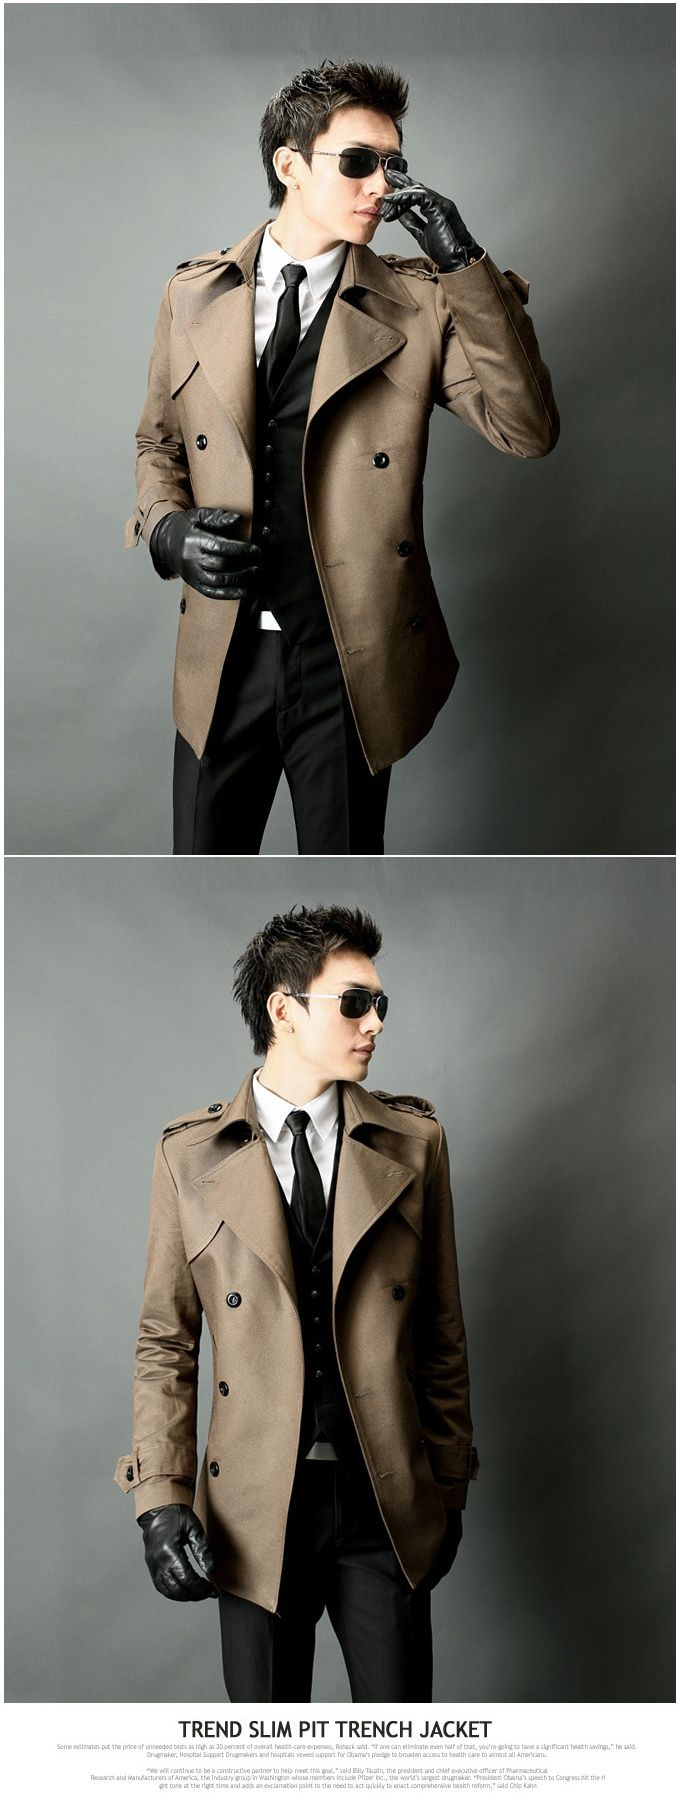 Herren Trenchcoat | Herren Casual harf Trenchcoat Kakao slim fit sale-gunmanforyou.com